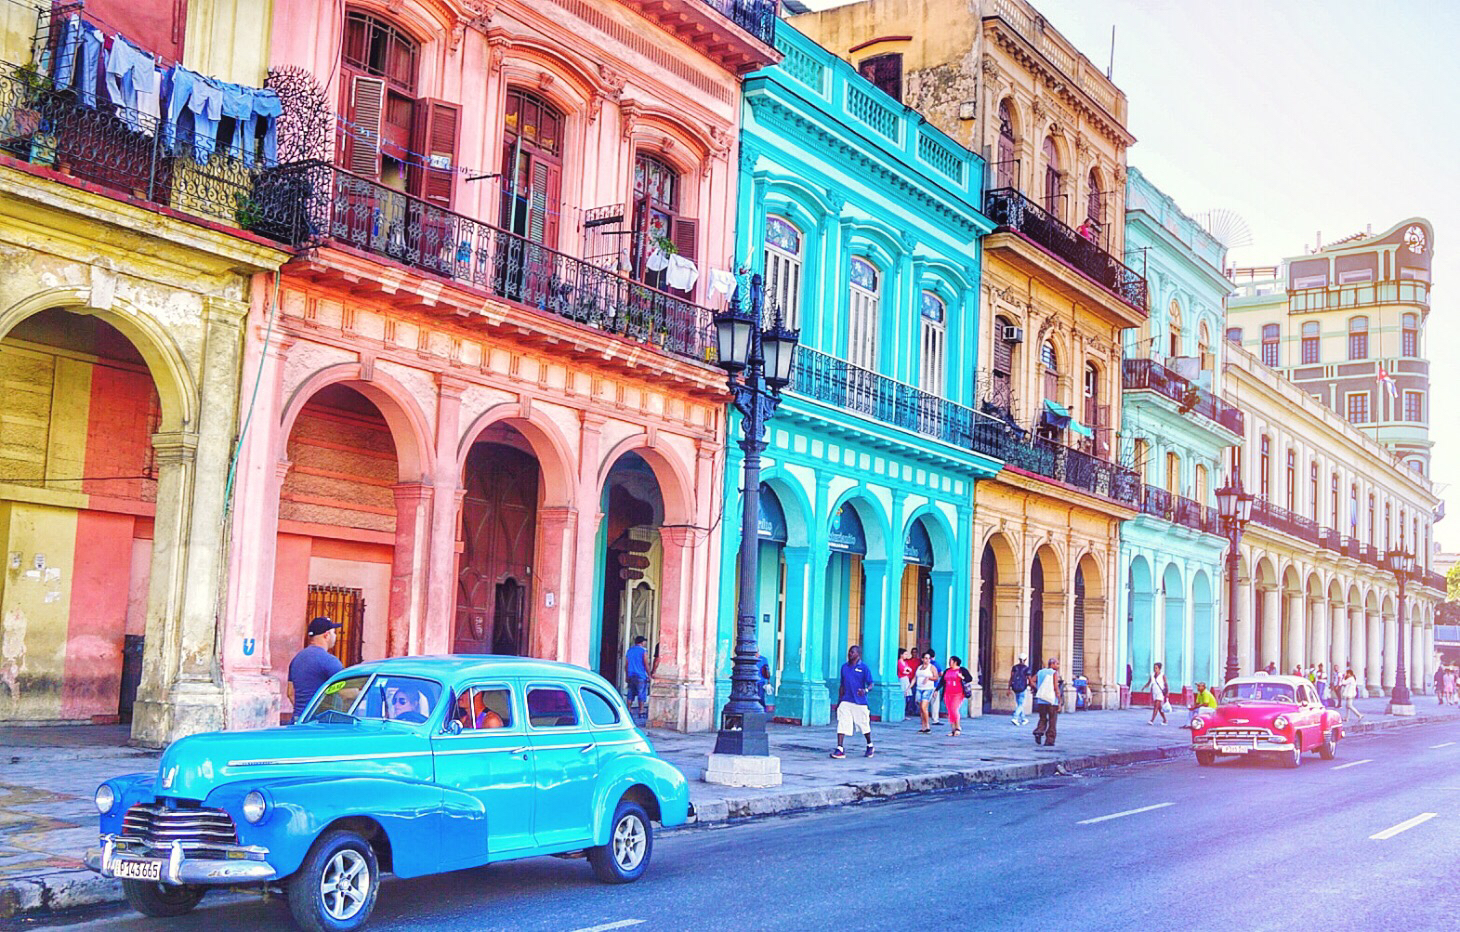 The vintage car tour took us to Fusterlandia, where Cuban artist José Fuster has turned his home neighborhood into a masterpiece of intricate tilework and kaleidoscopic colors. The whole neighborhood looks like an artist's gallery.